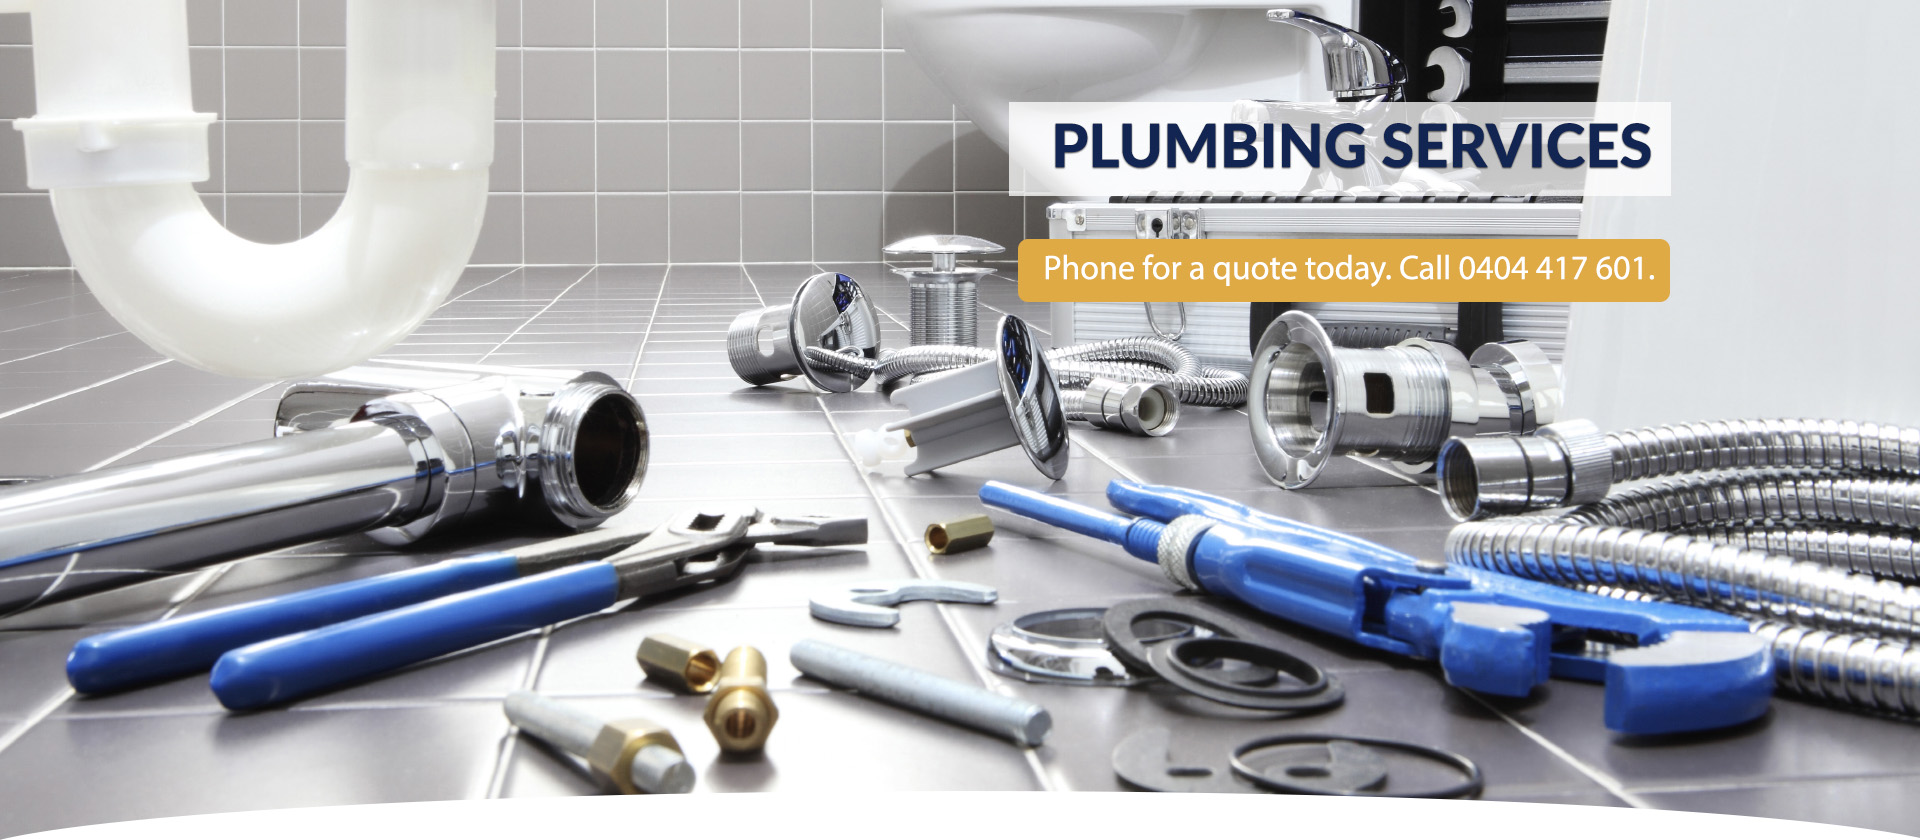 Mozgo Plumbing Services Gold Coast - Plumbing Services